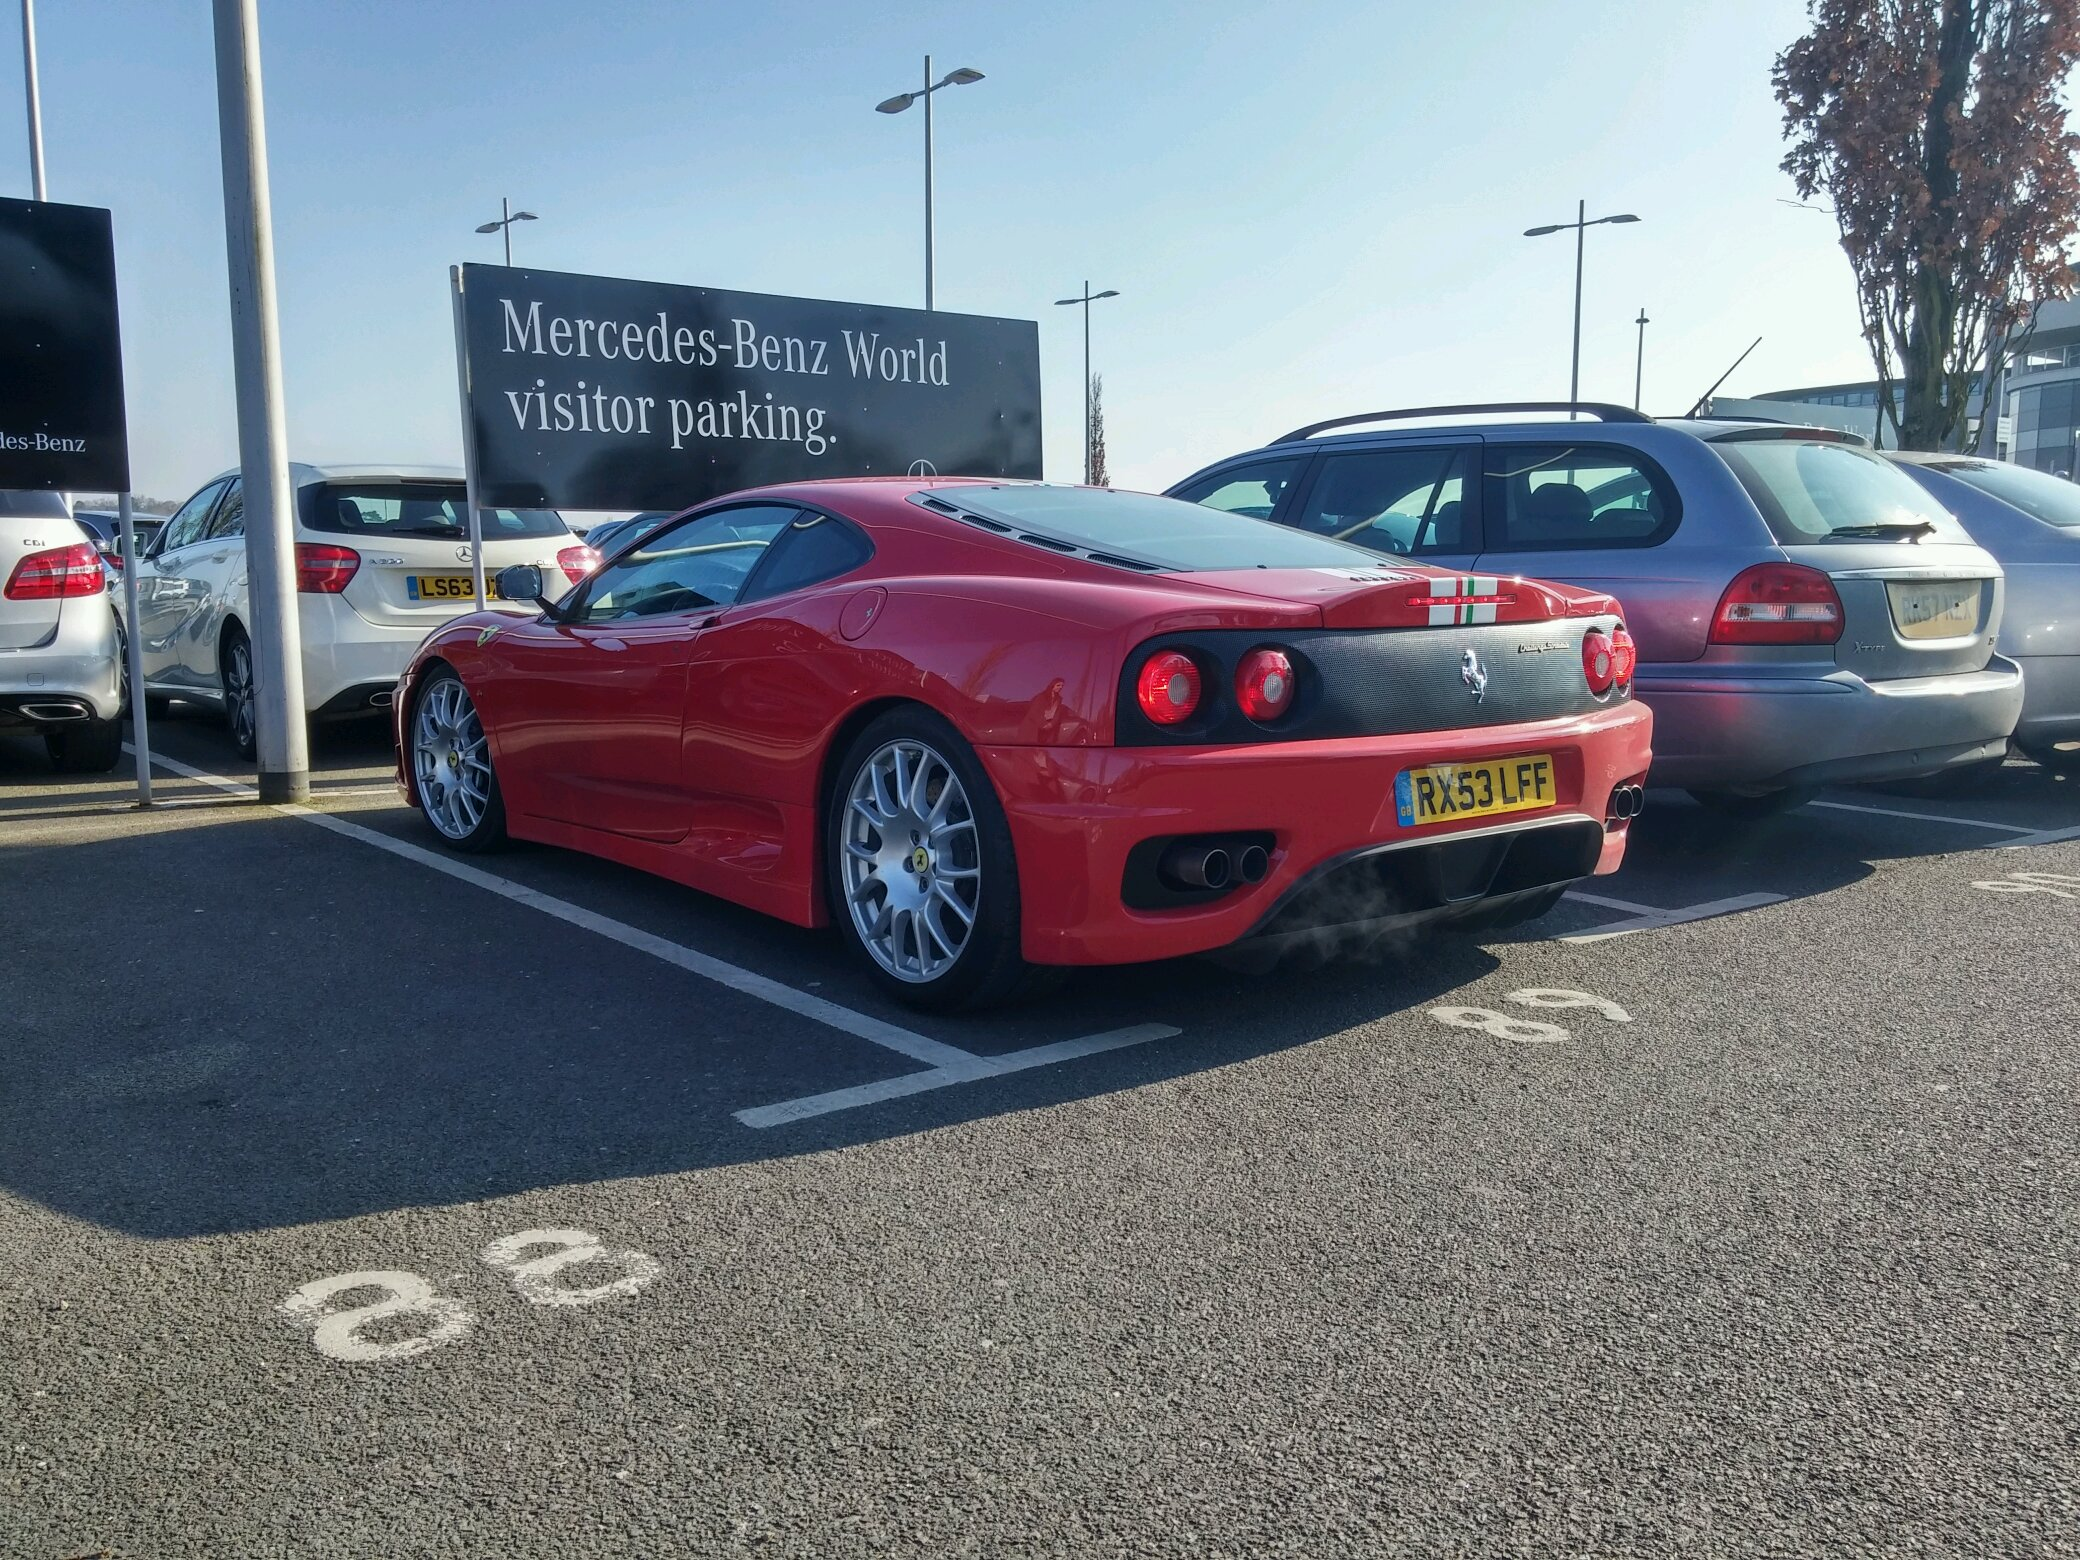 Ferrari 360cs Spotted Today Noise Was Heavenly